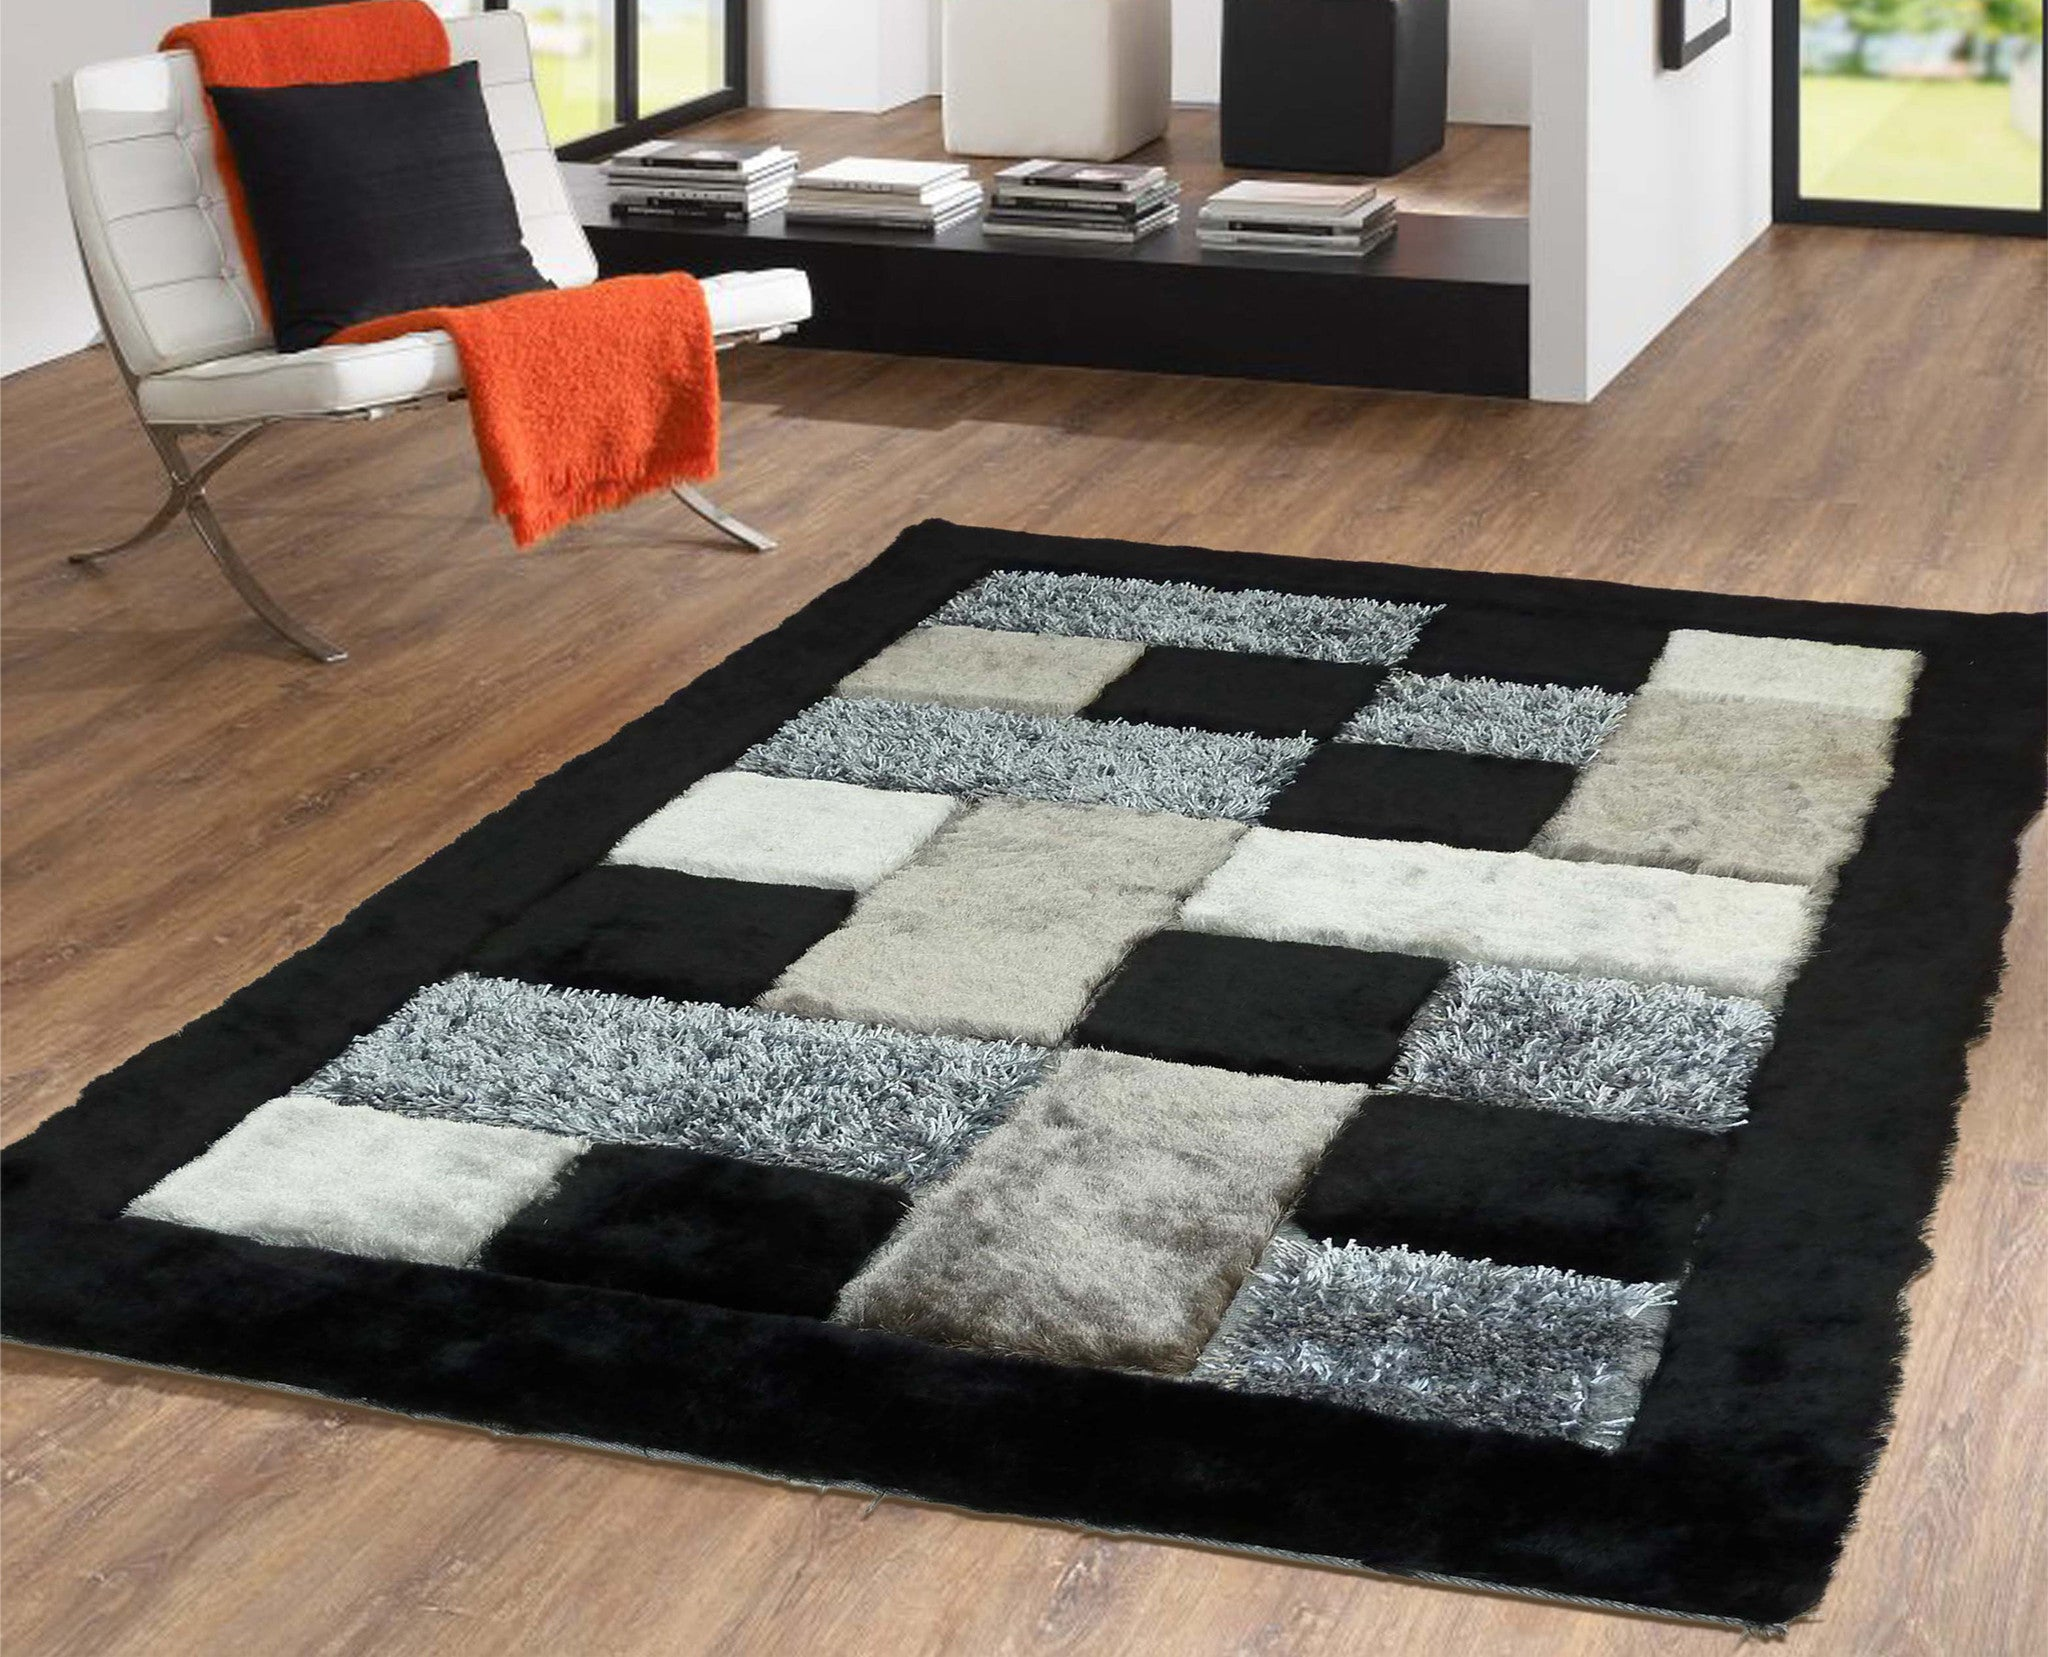 Luxurious Shag Rug In Grey And Black With Unique Checker Geometric Design  4u0027 X 5 .